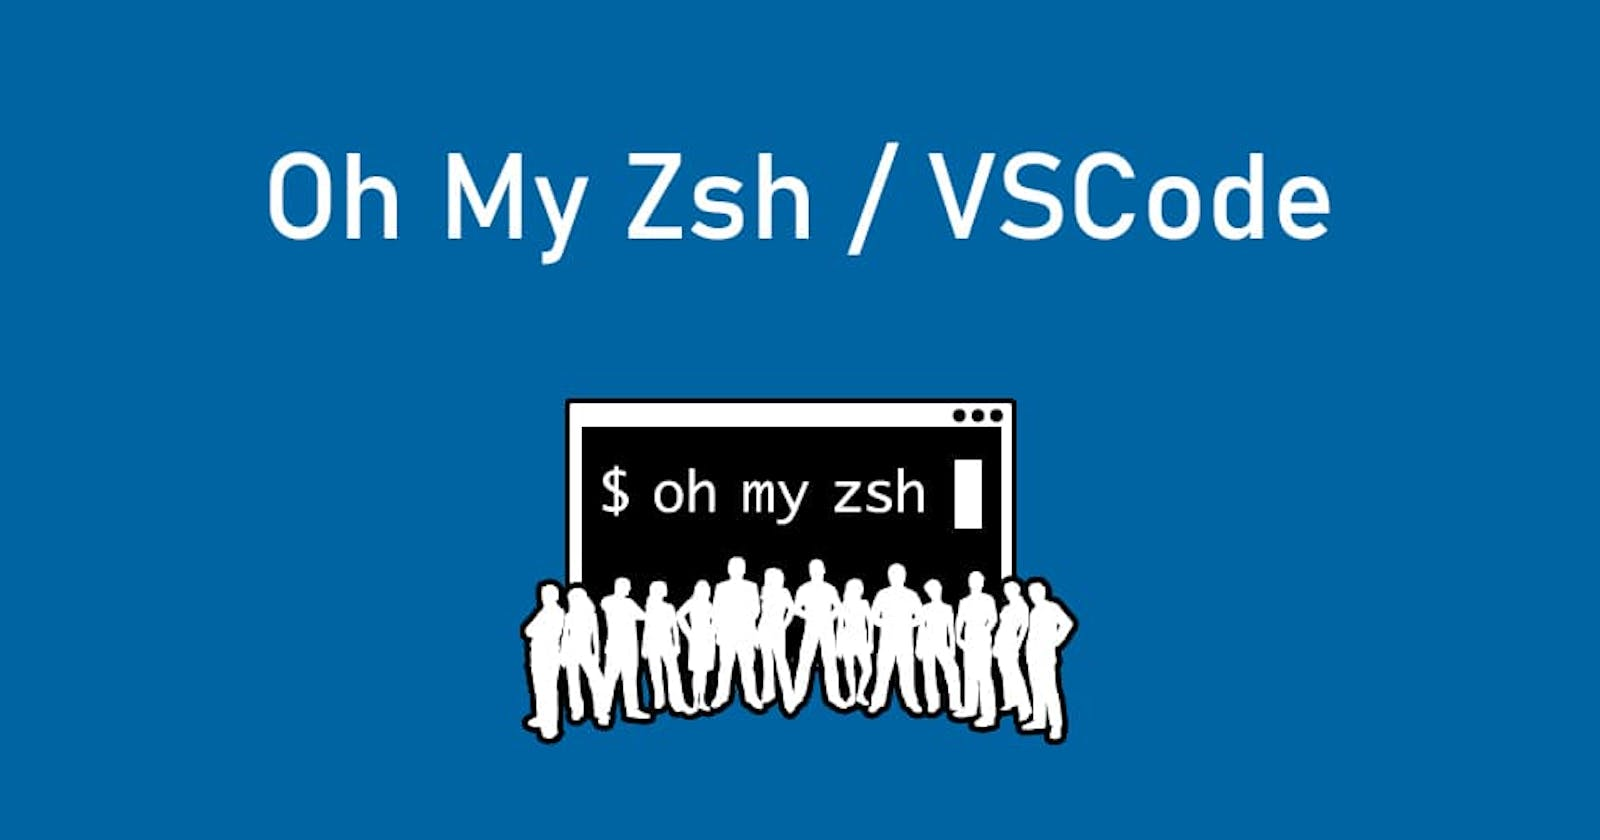 Terminal customization and expansion: Oh My Zsh and VSCode